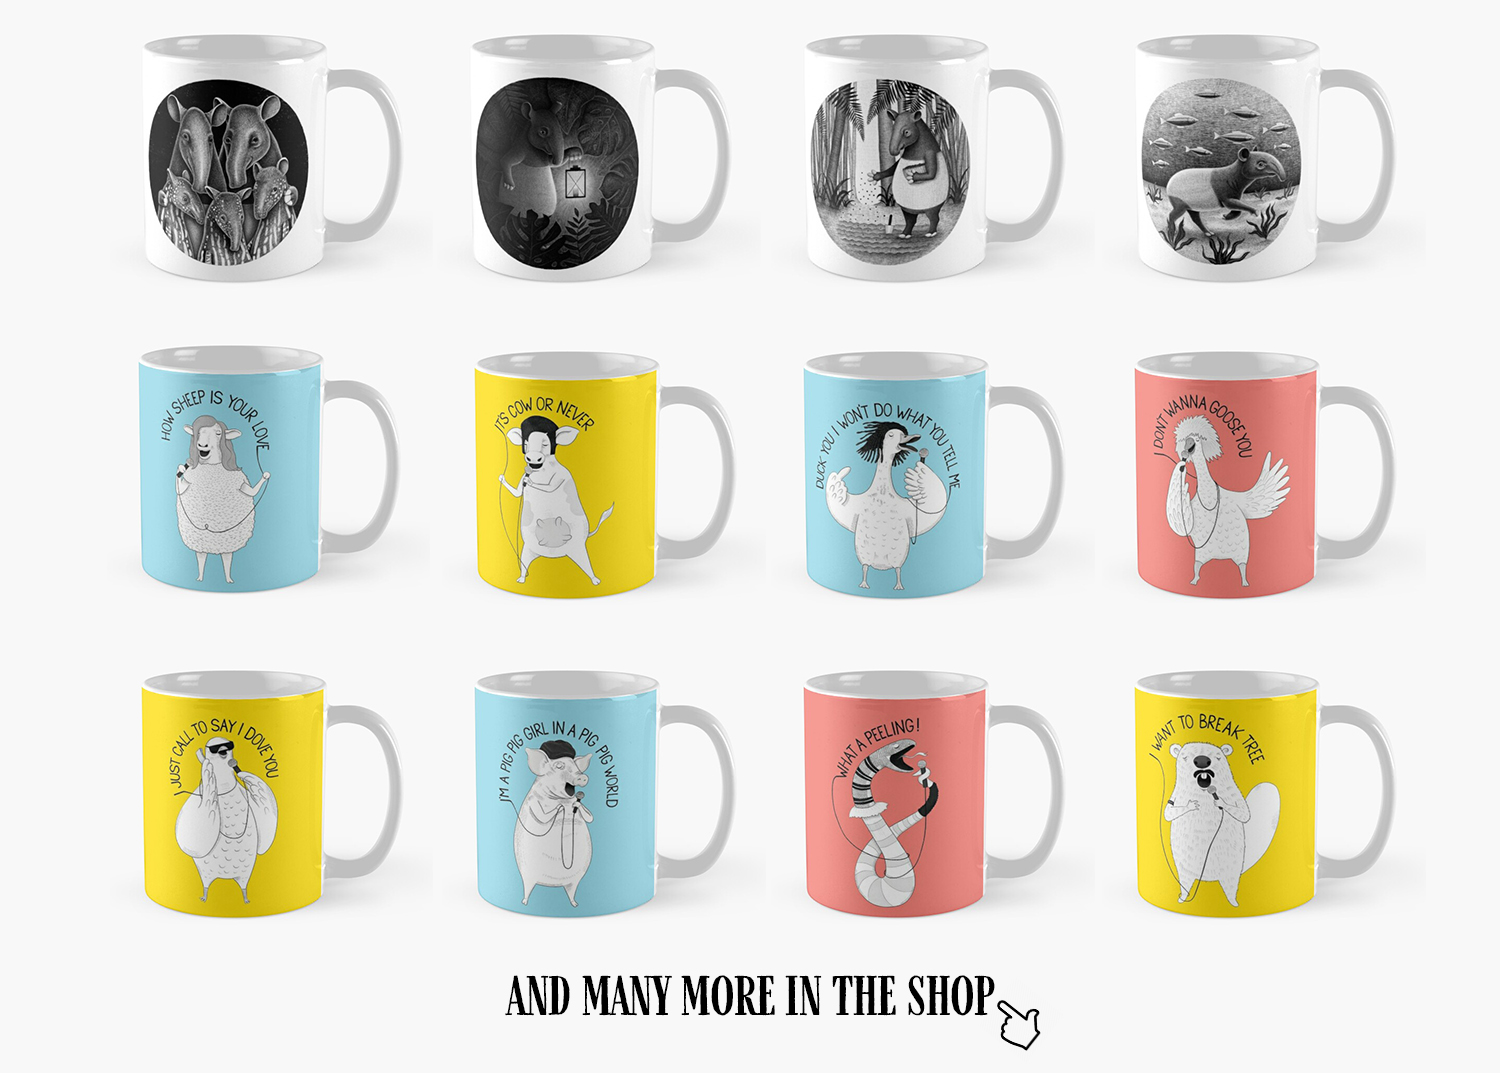 illustrated mugs for sale